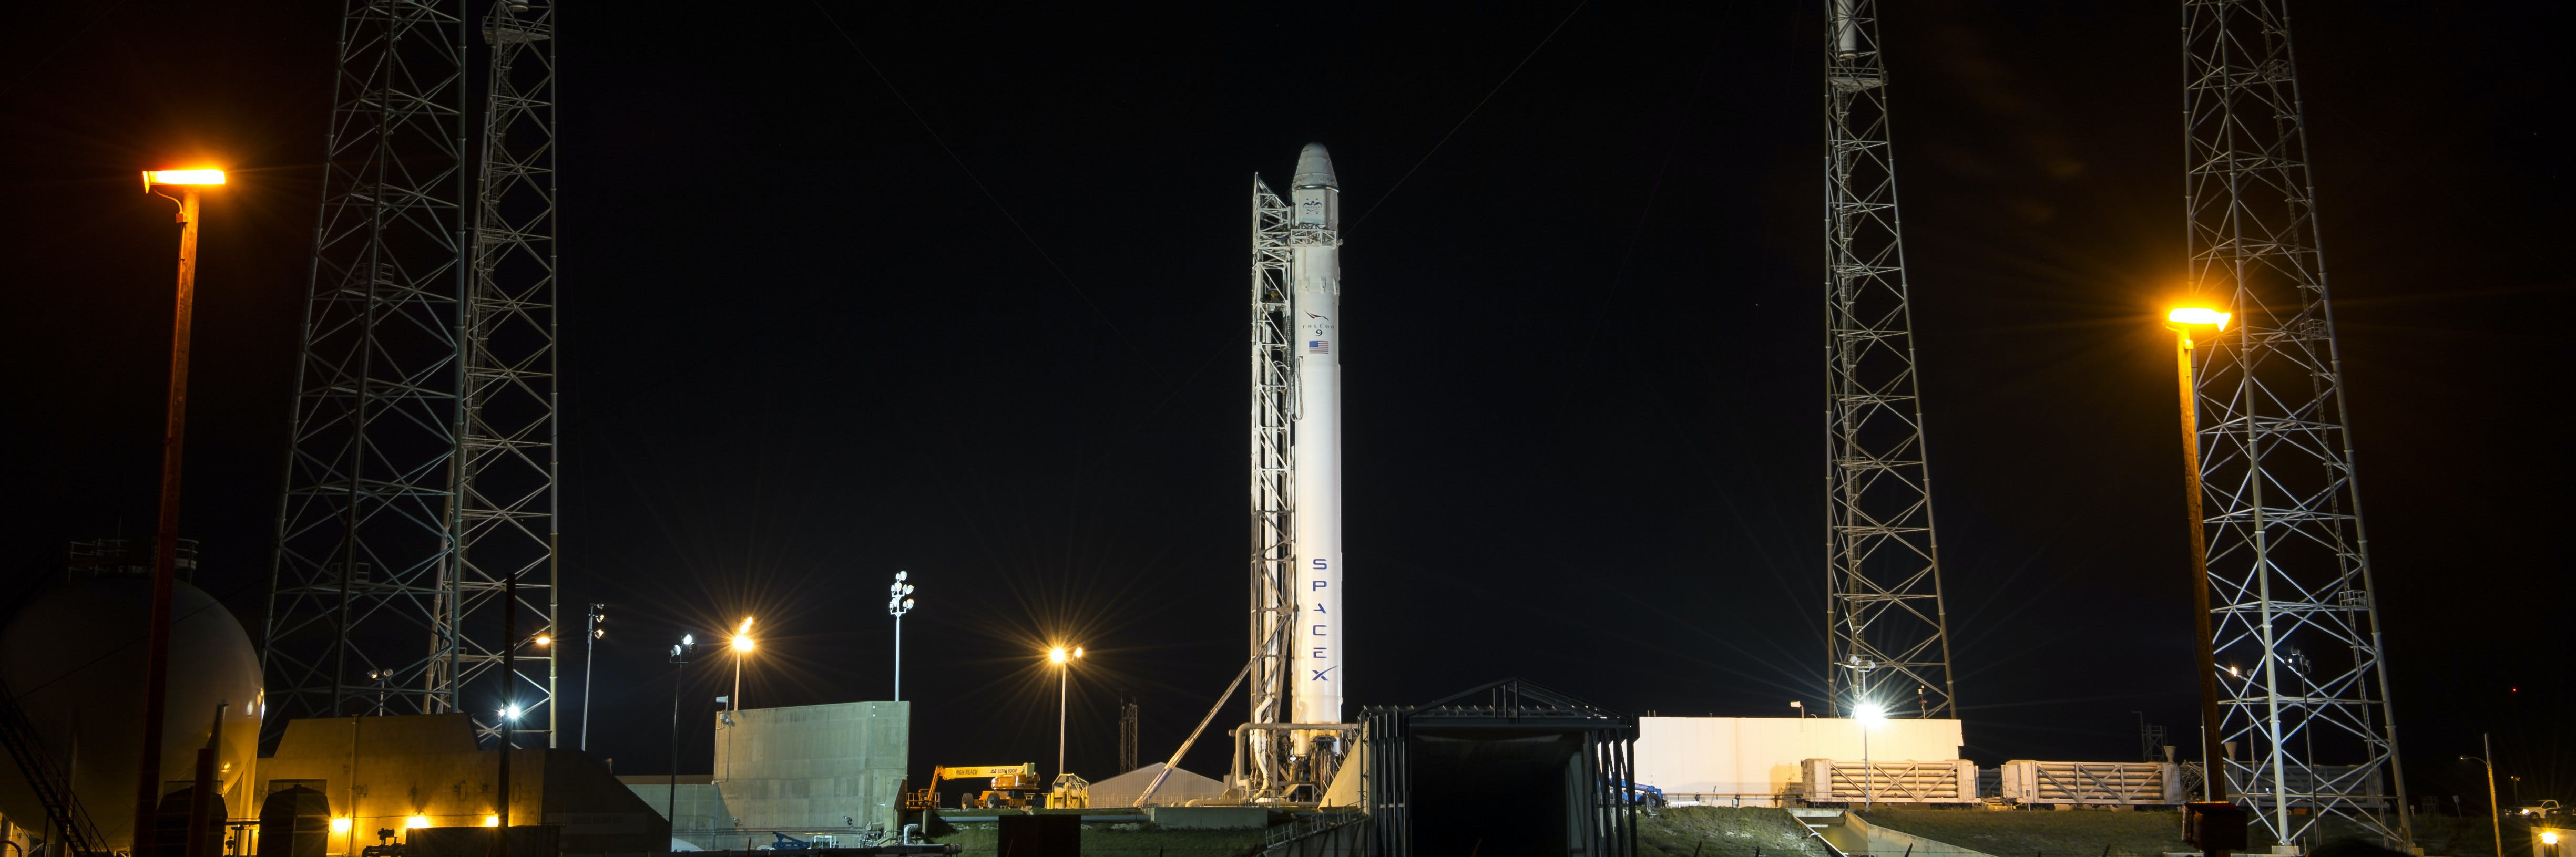 SpaceX may be ready to launch supplies to the International Space Station for NASA as soon as Saturday.